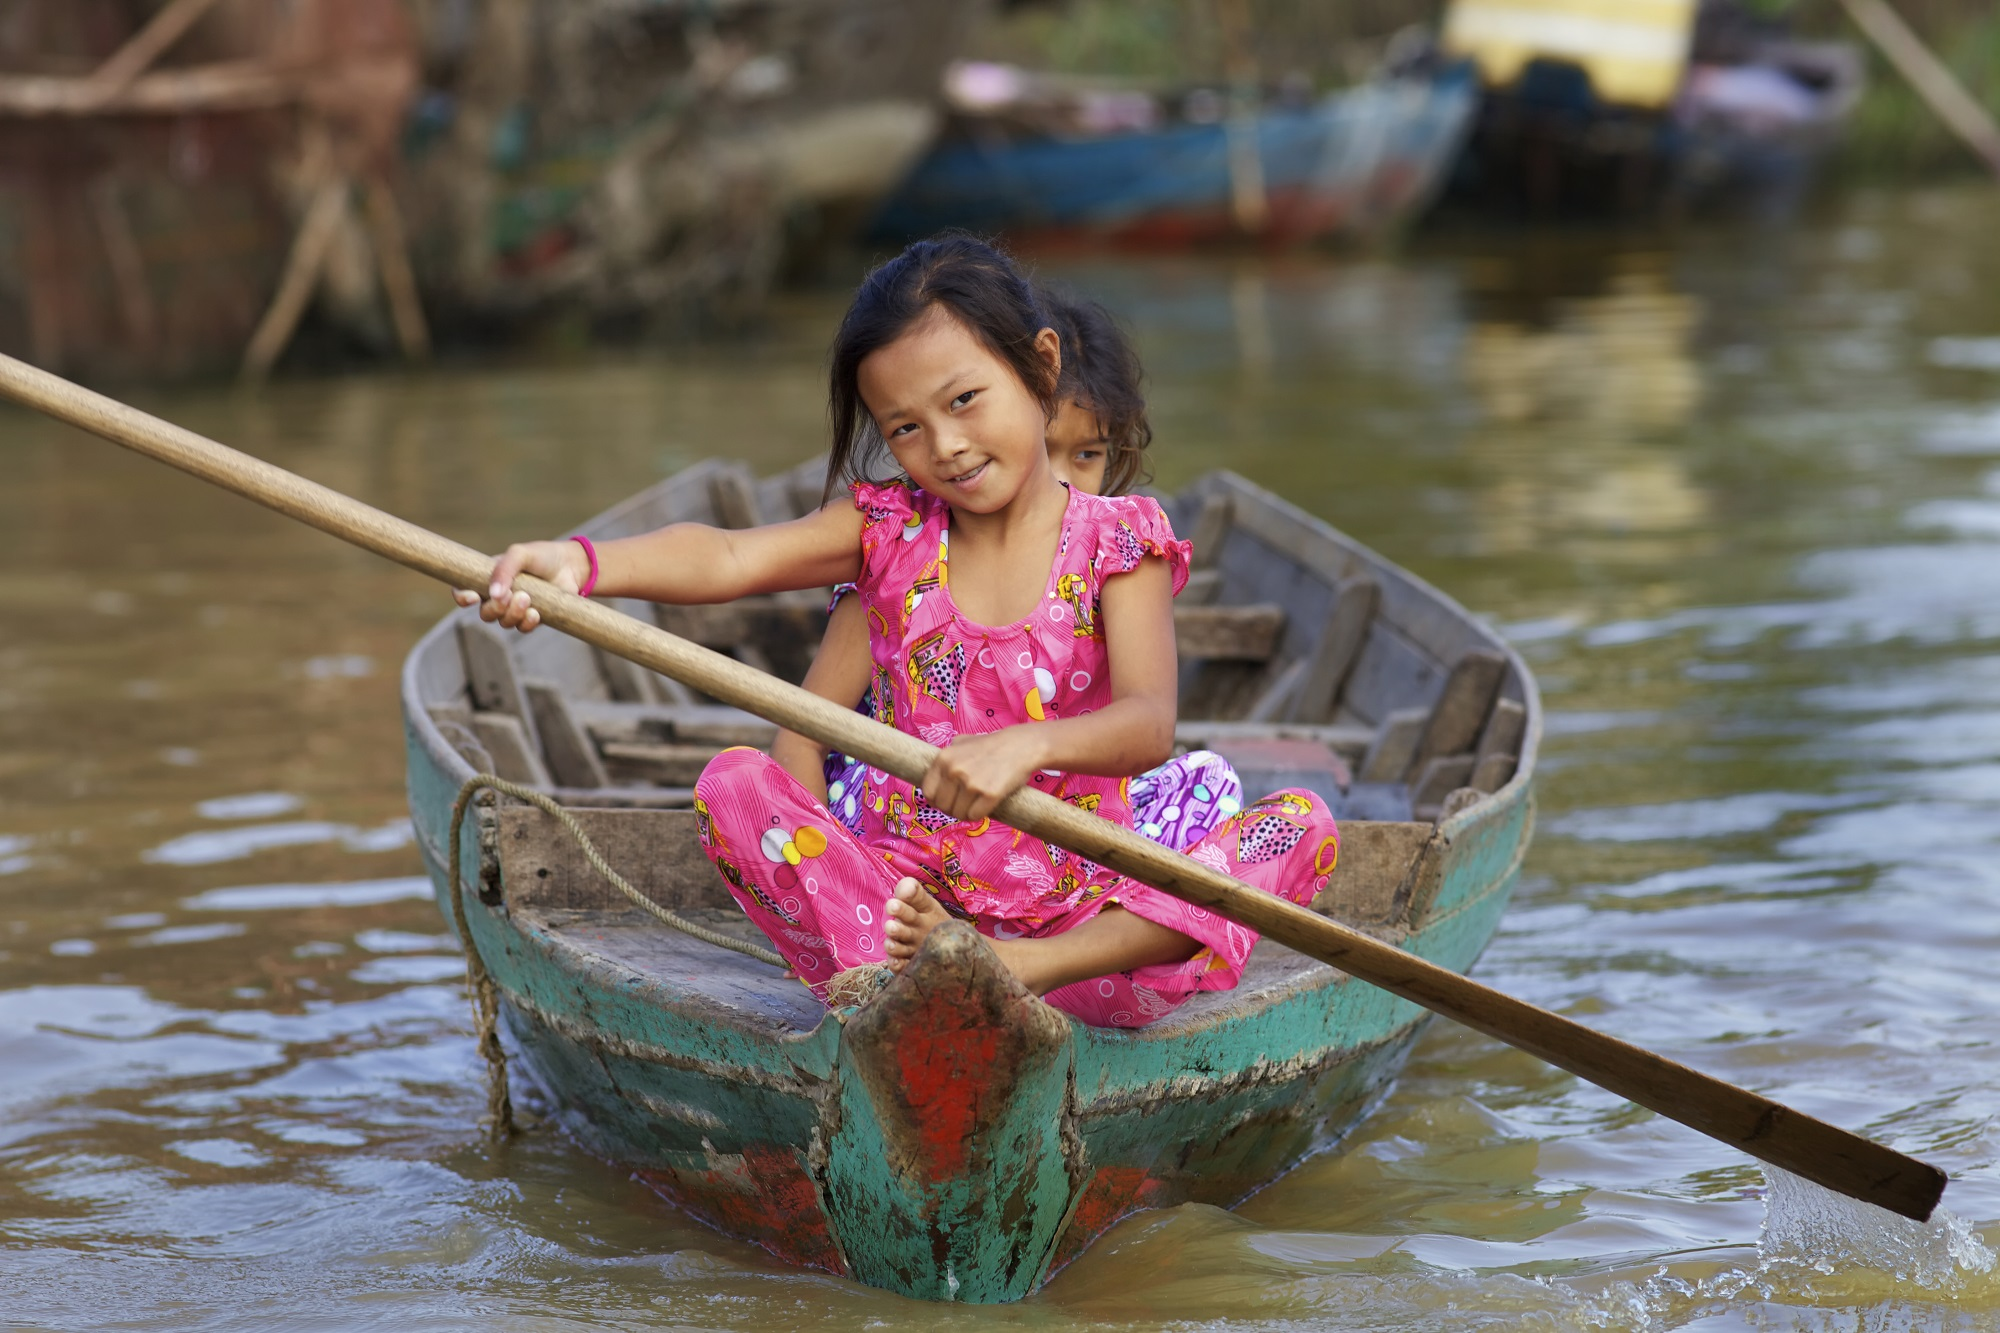 Two children rowing rowing boat on Tonle Sap Lake in Siem Reap, Cambodia. Photo: Stephen Bures / Shutterstock